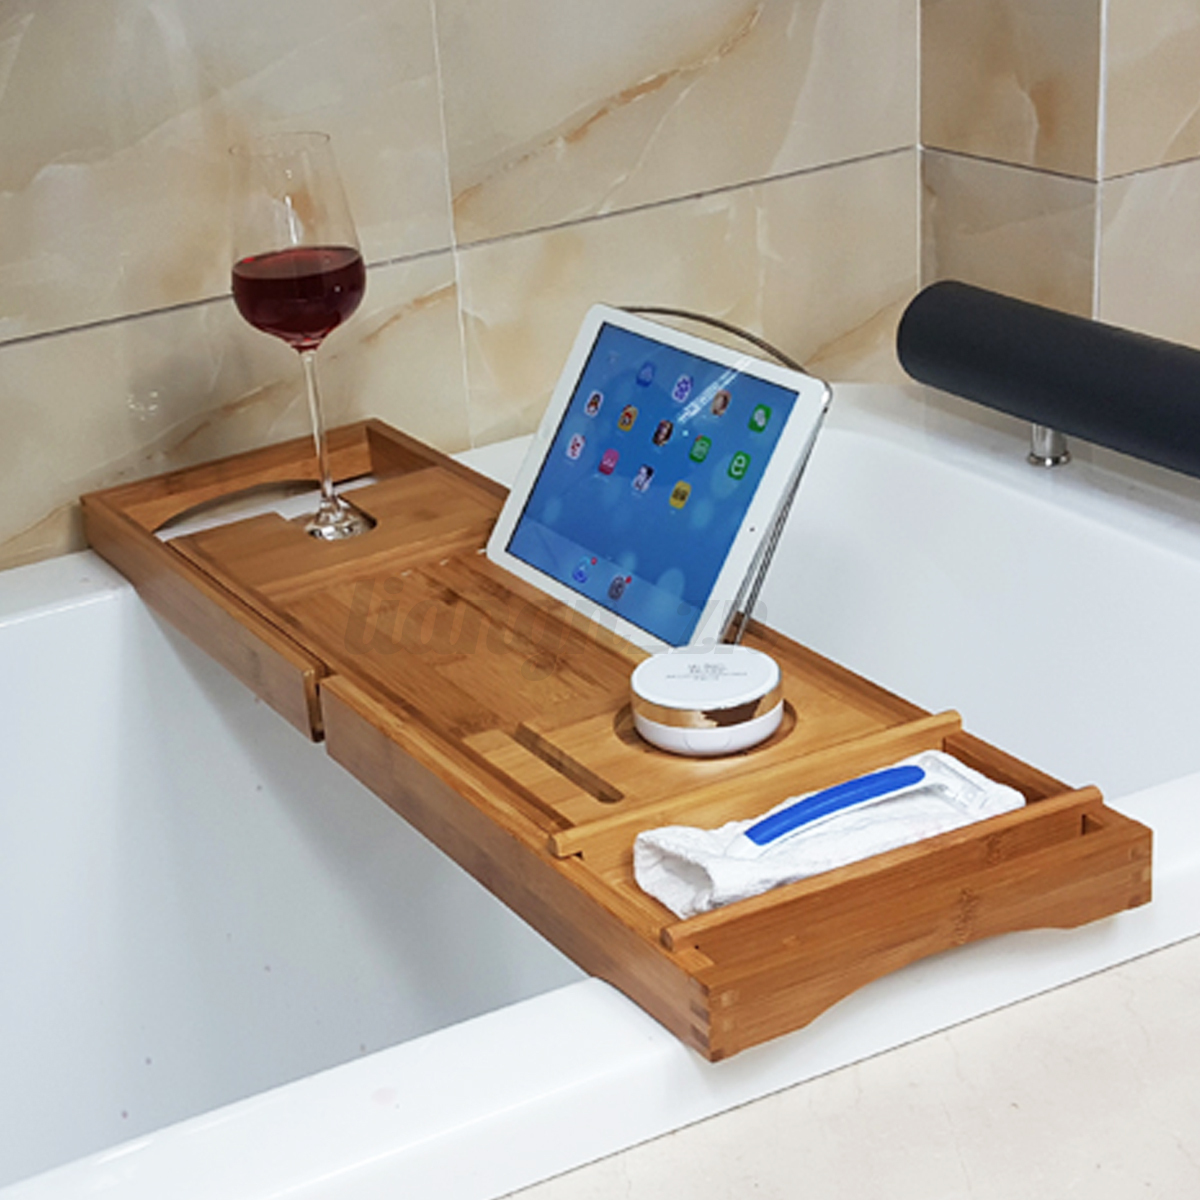 Extendable Bamboo Bath Caddy Wine Glass Holder Tray Over